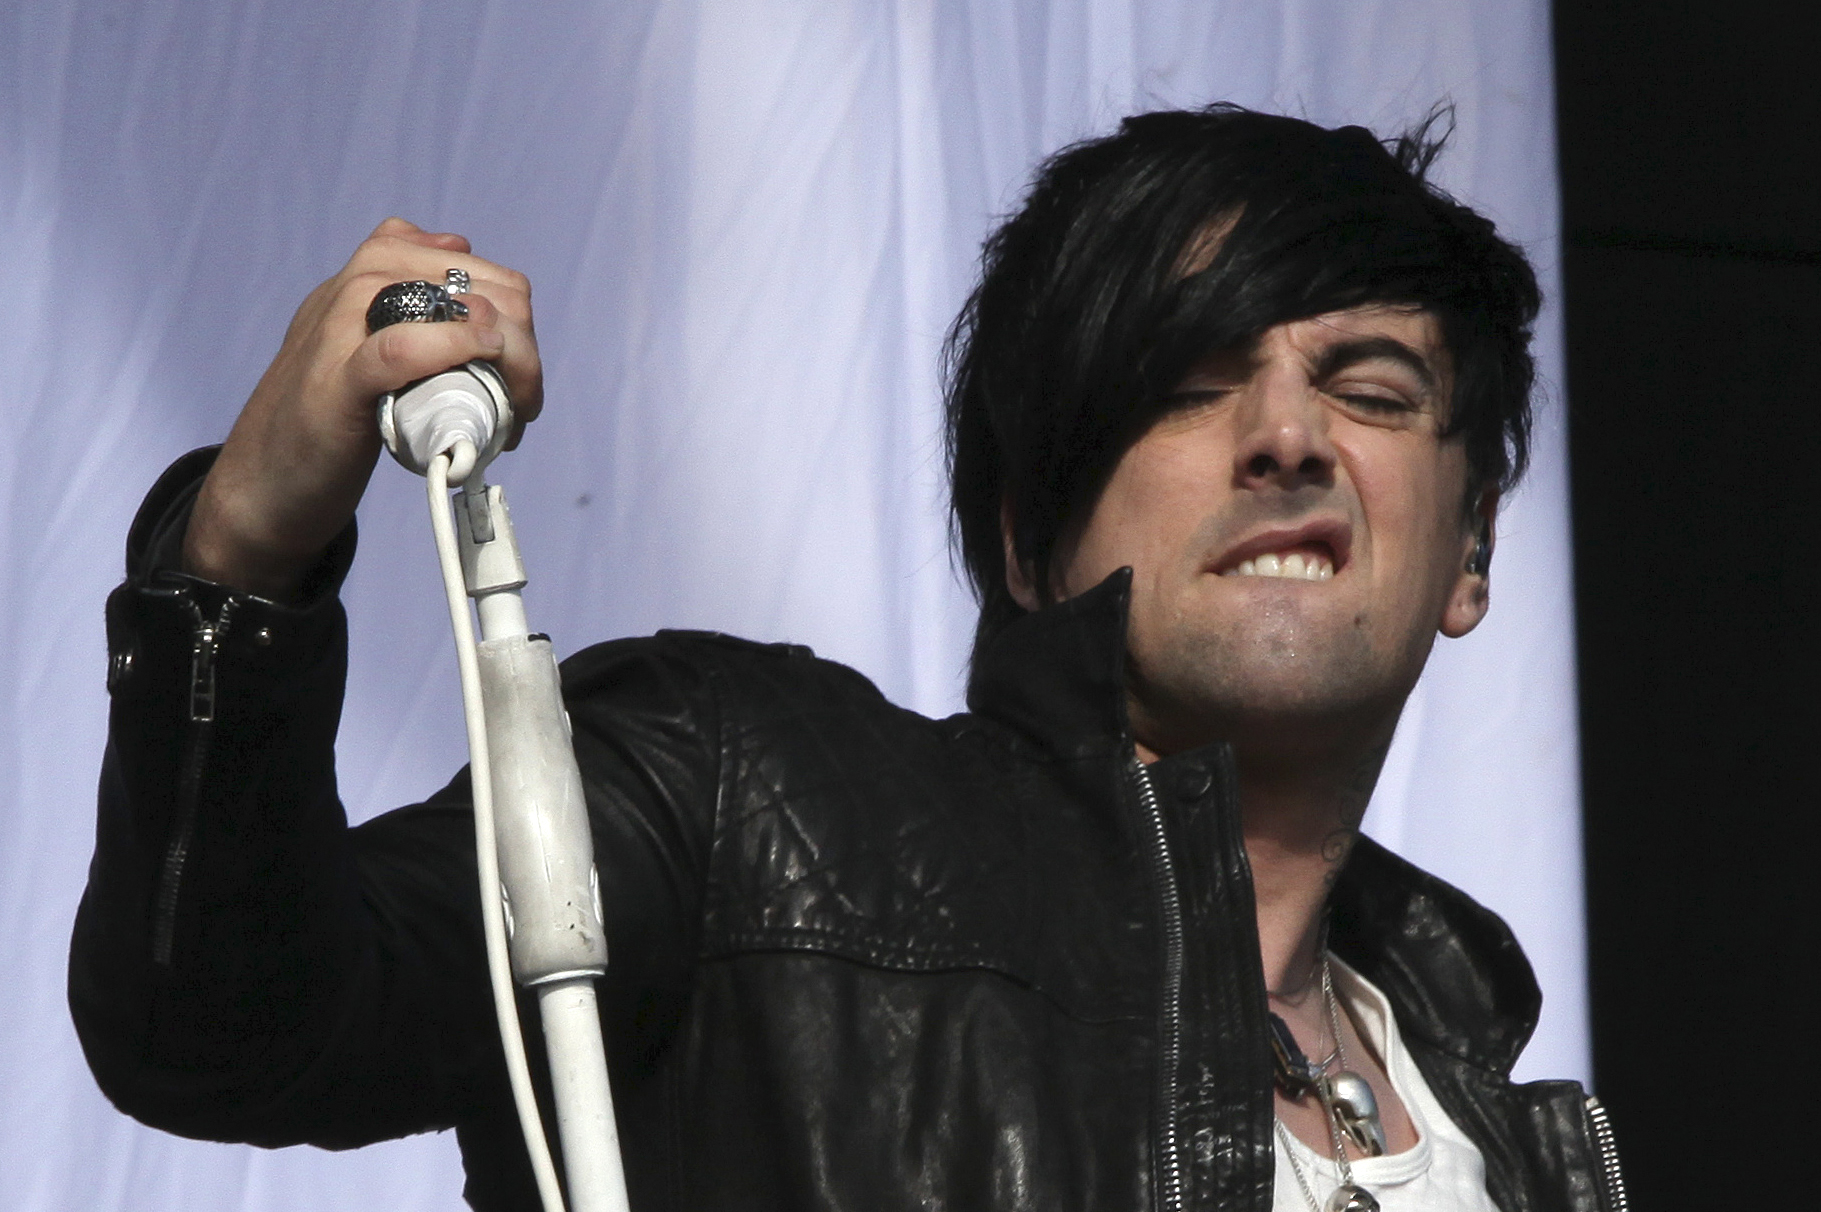 FILE This is a Saturday, Aug 20, 2011 file photo of British musician Ian Watkins, lead singer of Lostprophets, as he  perform